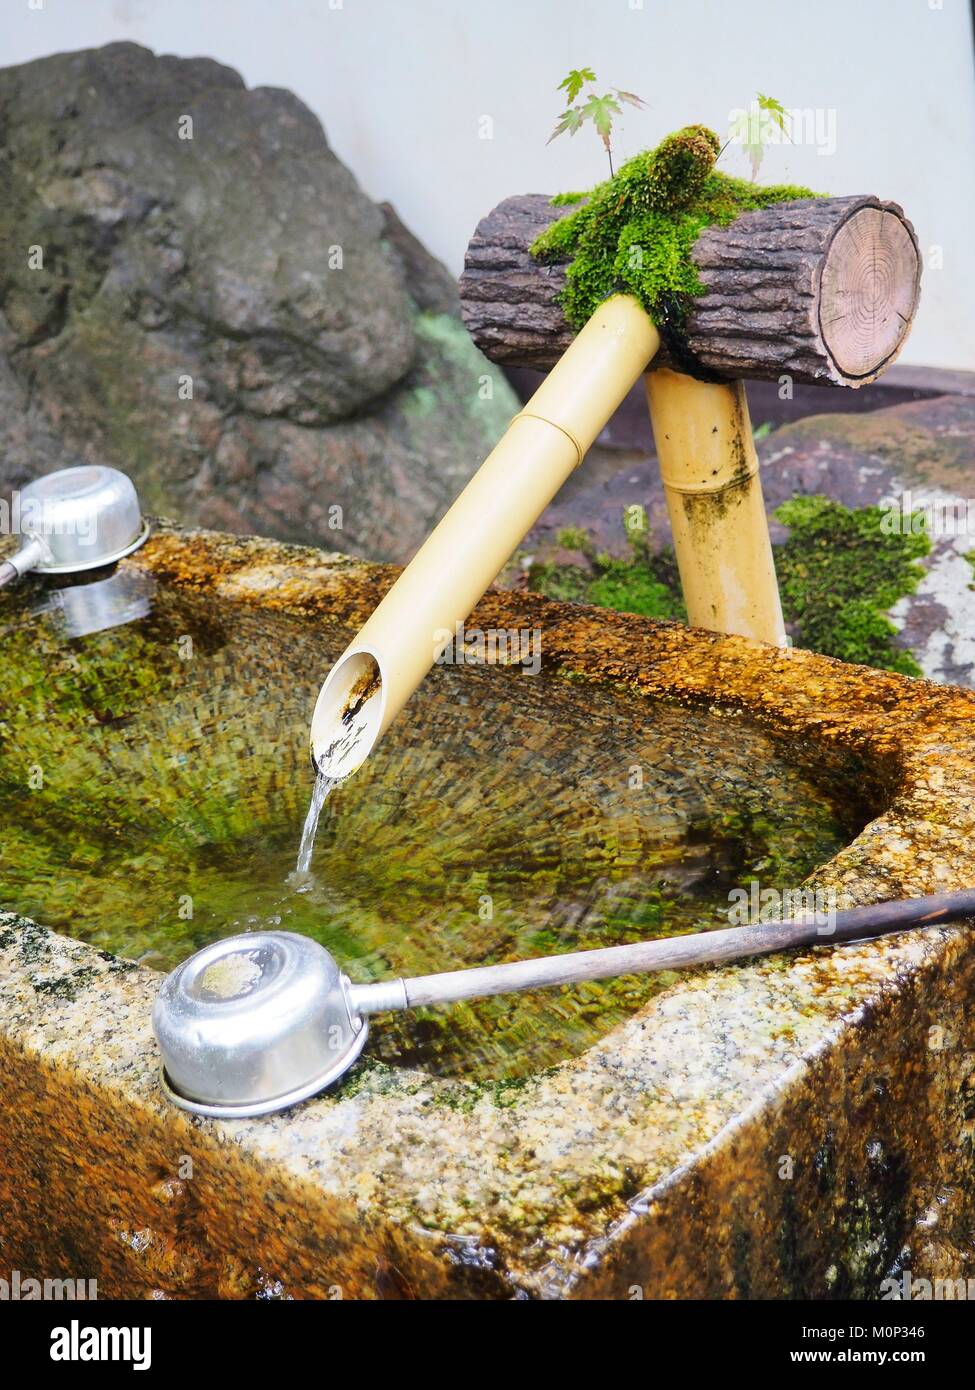 Japan,Kyoto,Kurama,Temple of Kurama Dera,Monastery Daitoku-Ji,purification fountain - Stock Image